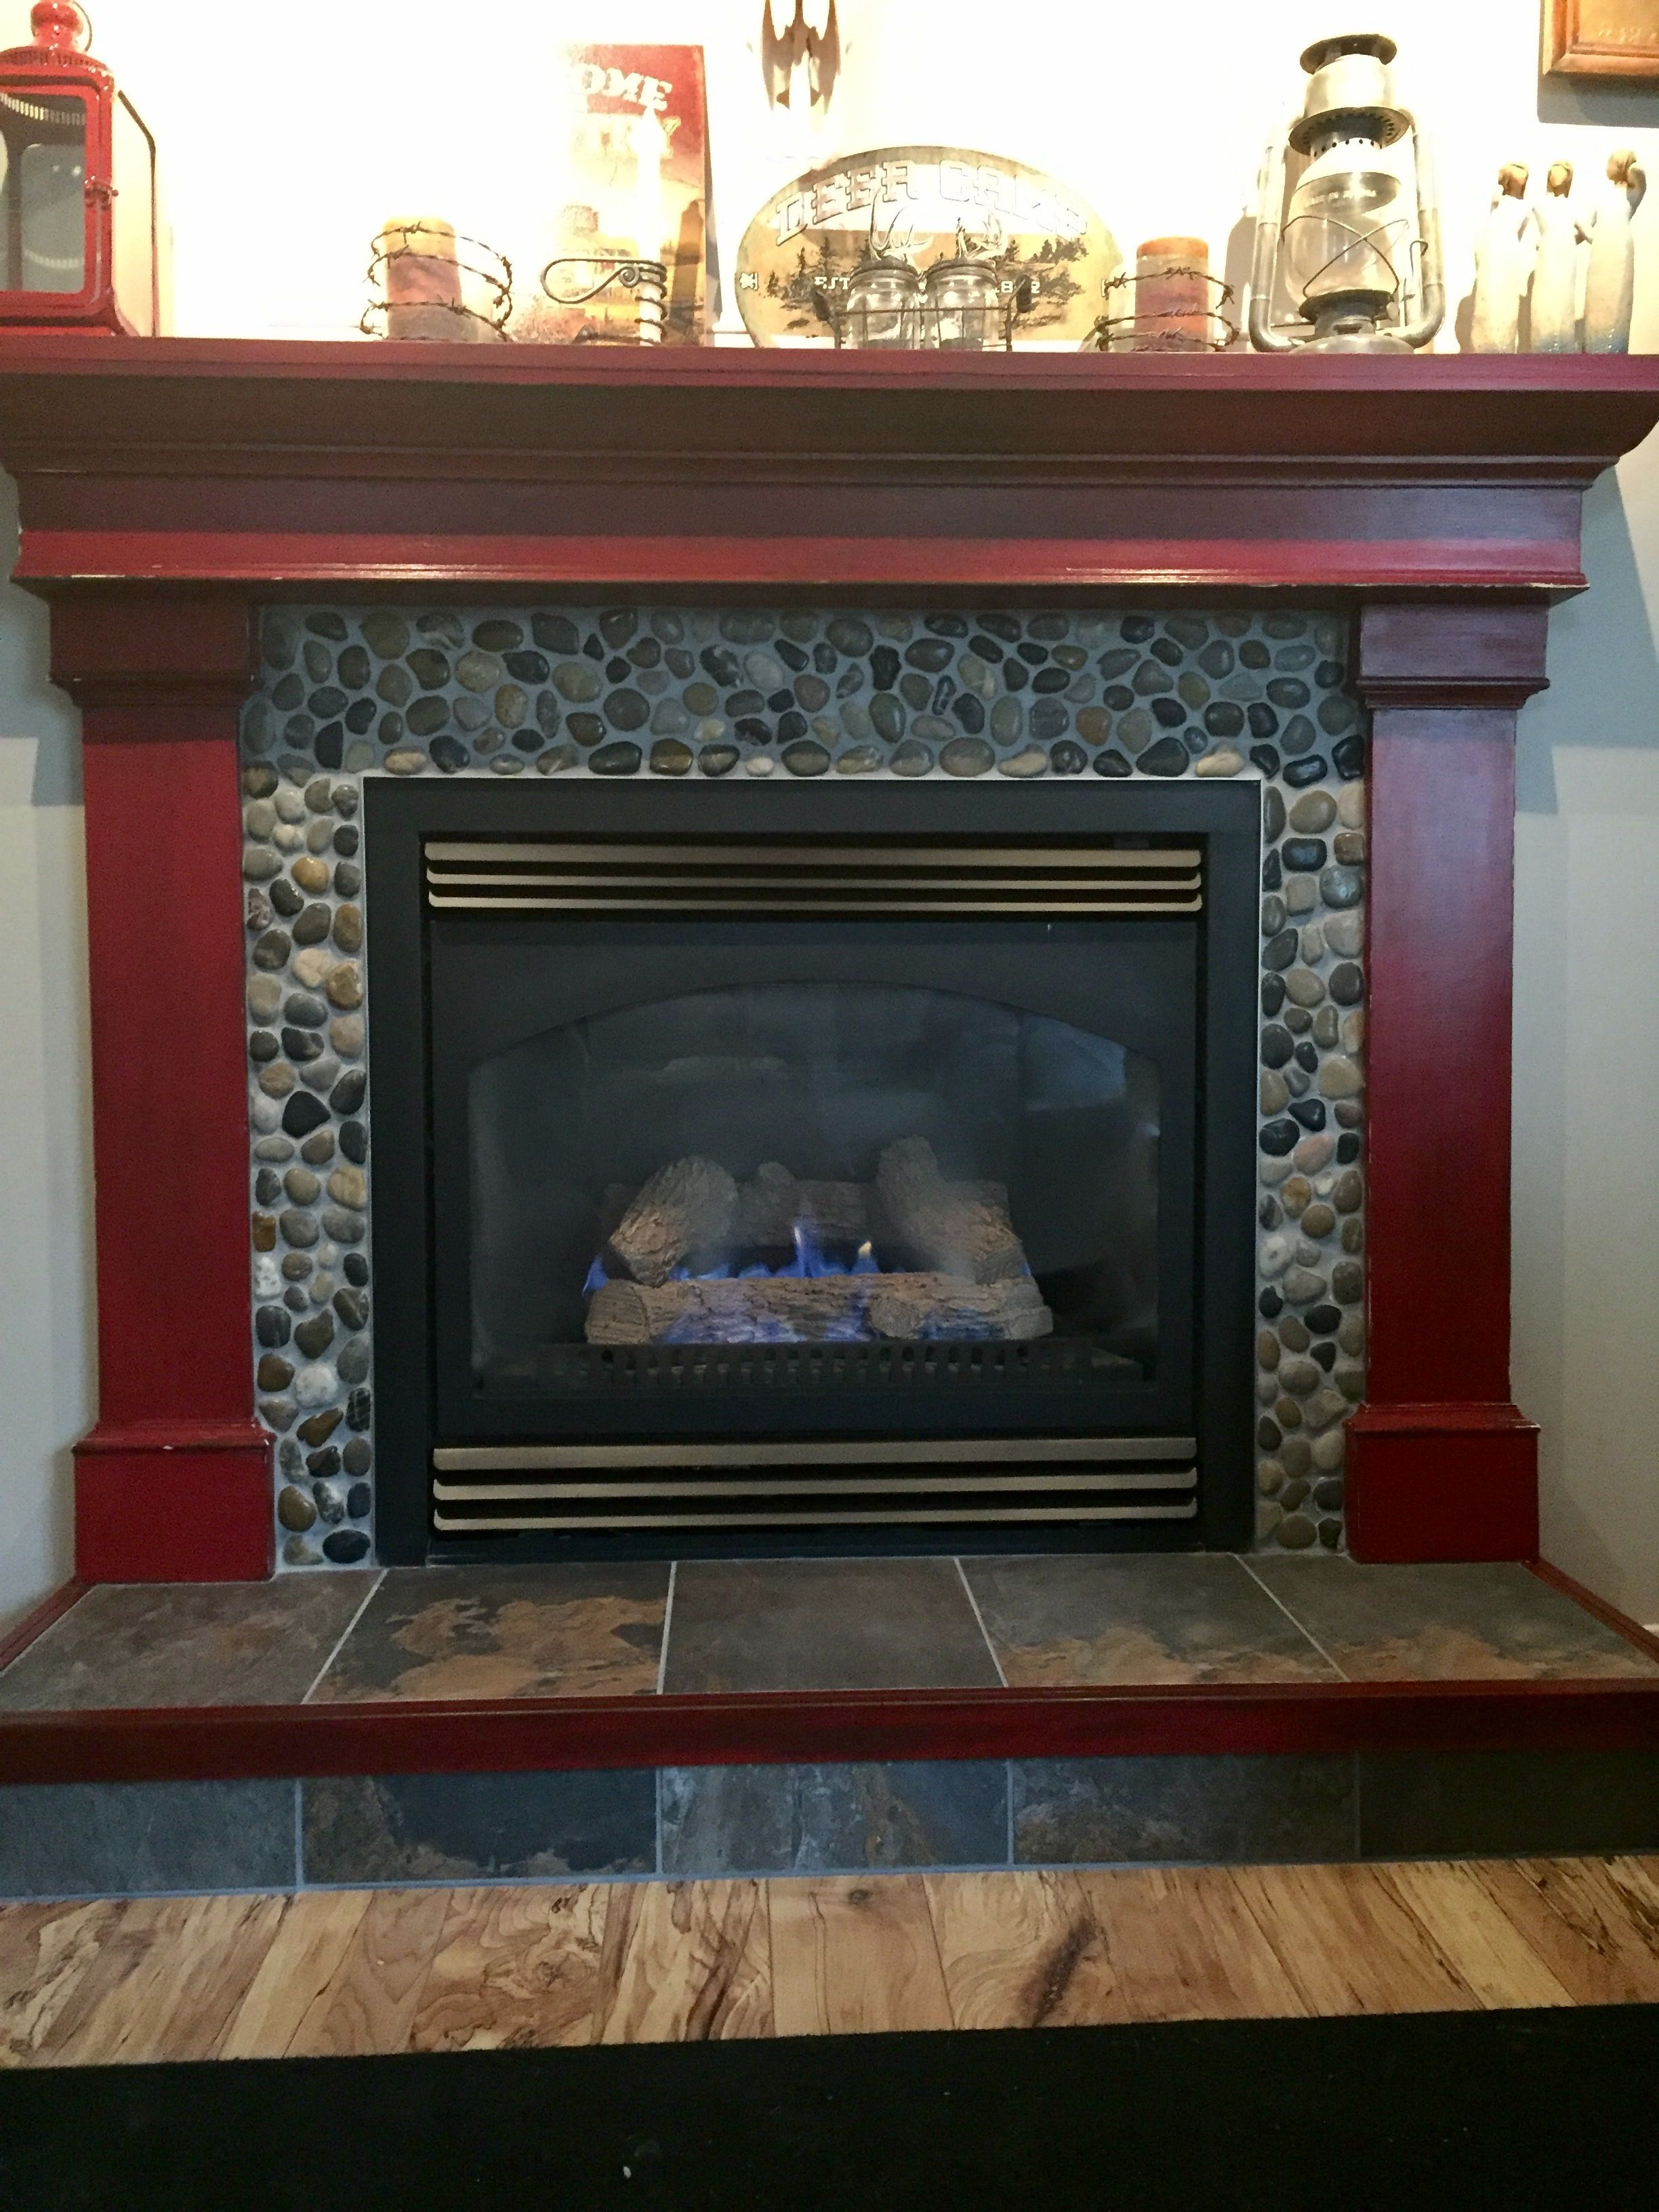 Fireplace And Mantel Painted White Swiss Coffee Was Flat Red Brick W Dark Oak Mantel As A Quick Simple Fix I Insisted Home Staging Tips Oak Mantel Home